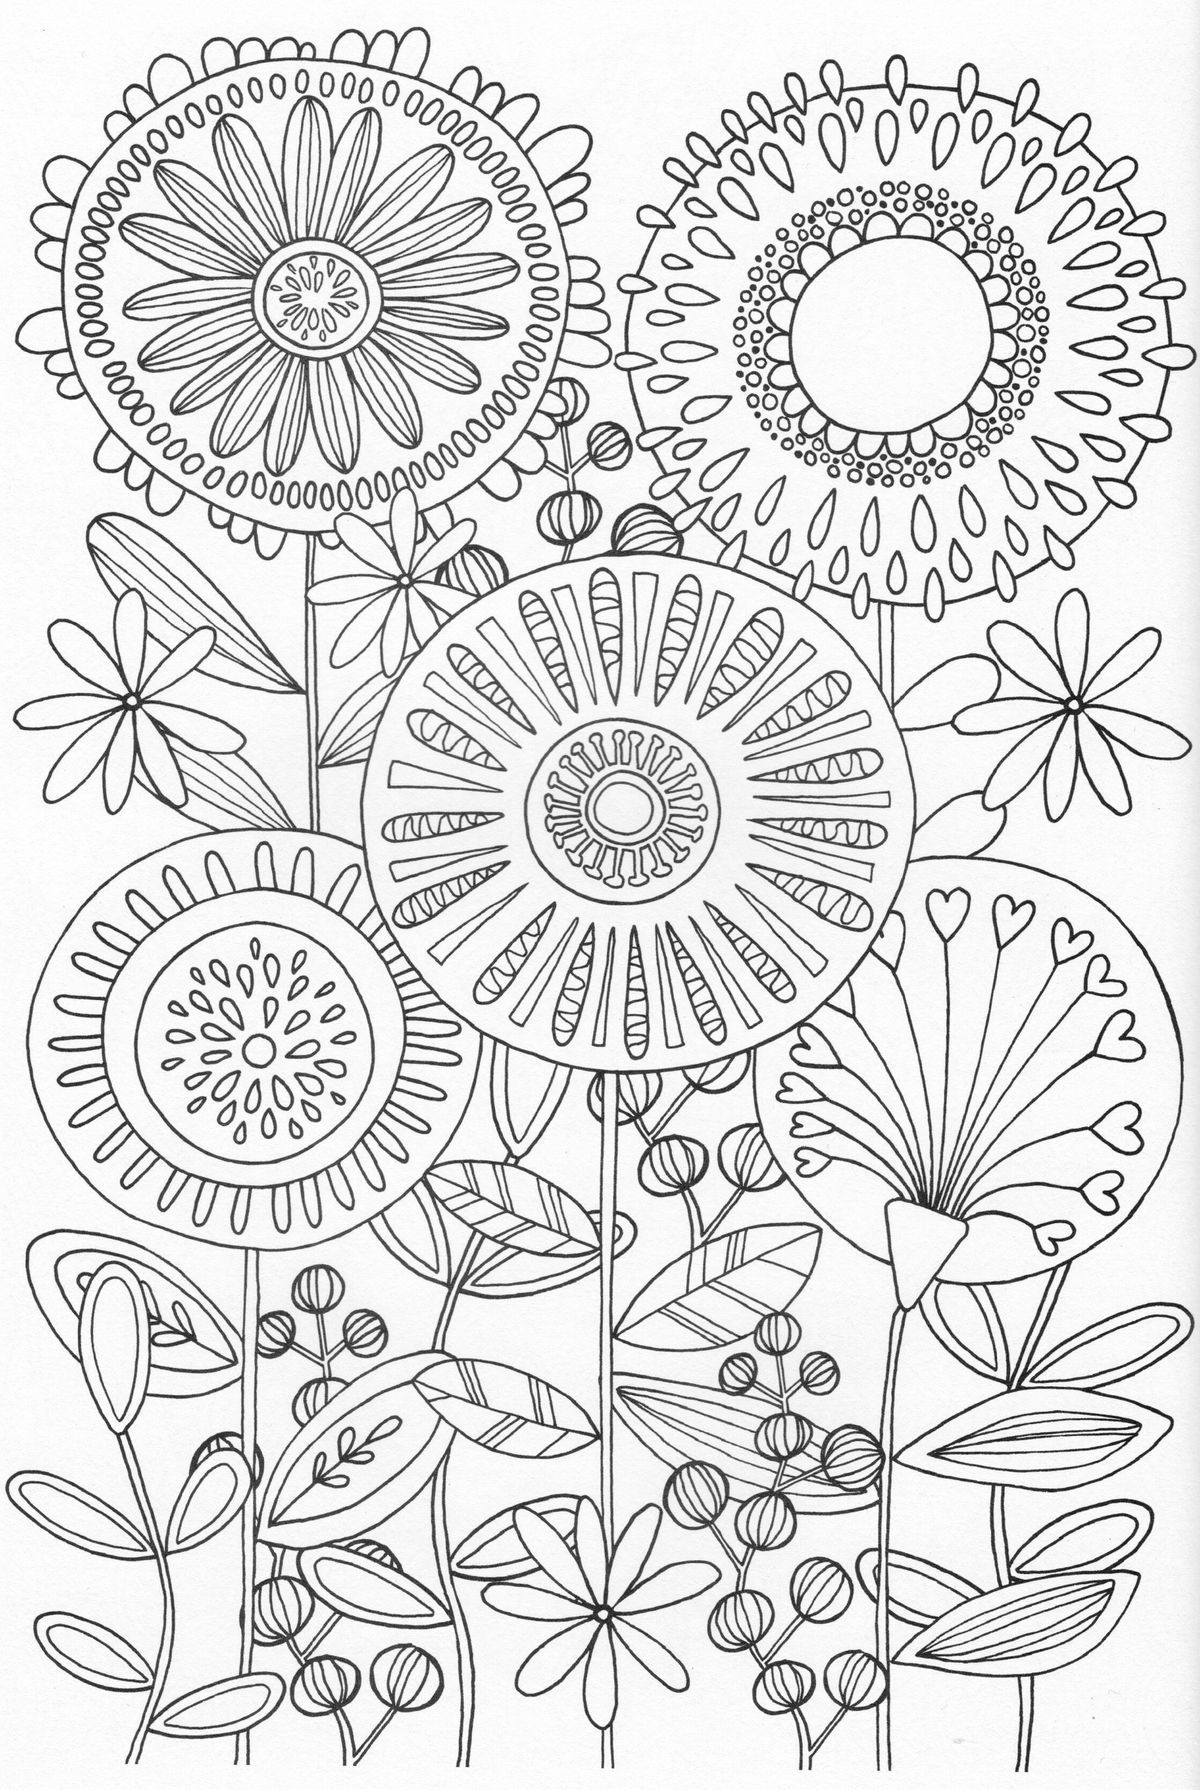 27 Nature Mandala Coloring Pages Collection Coloring Sheets